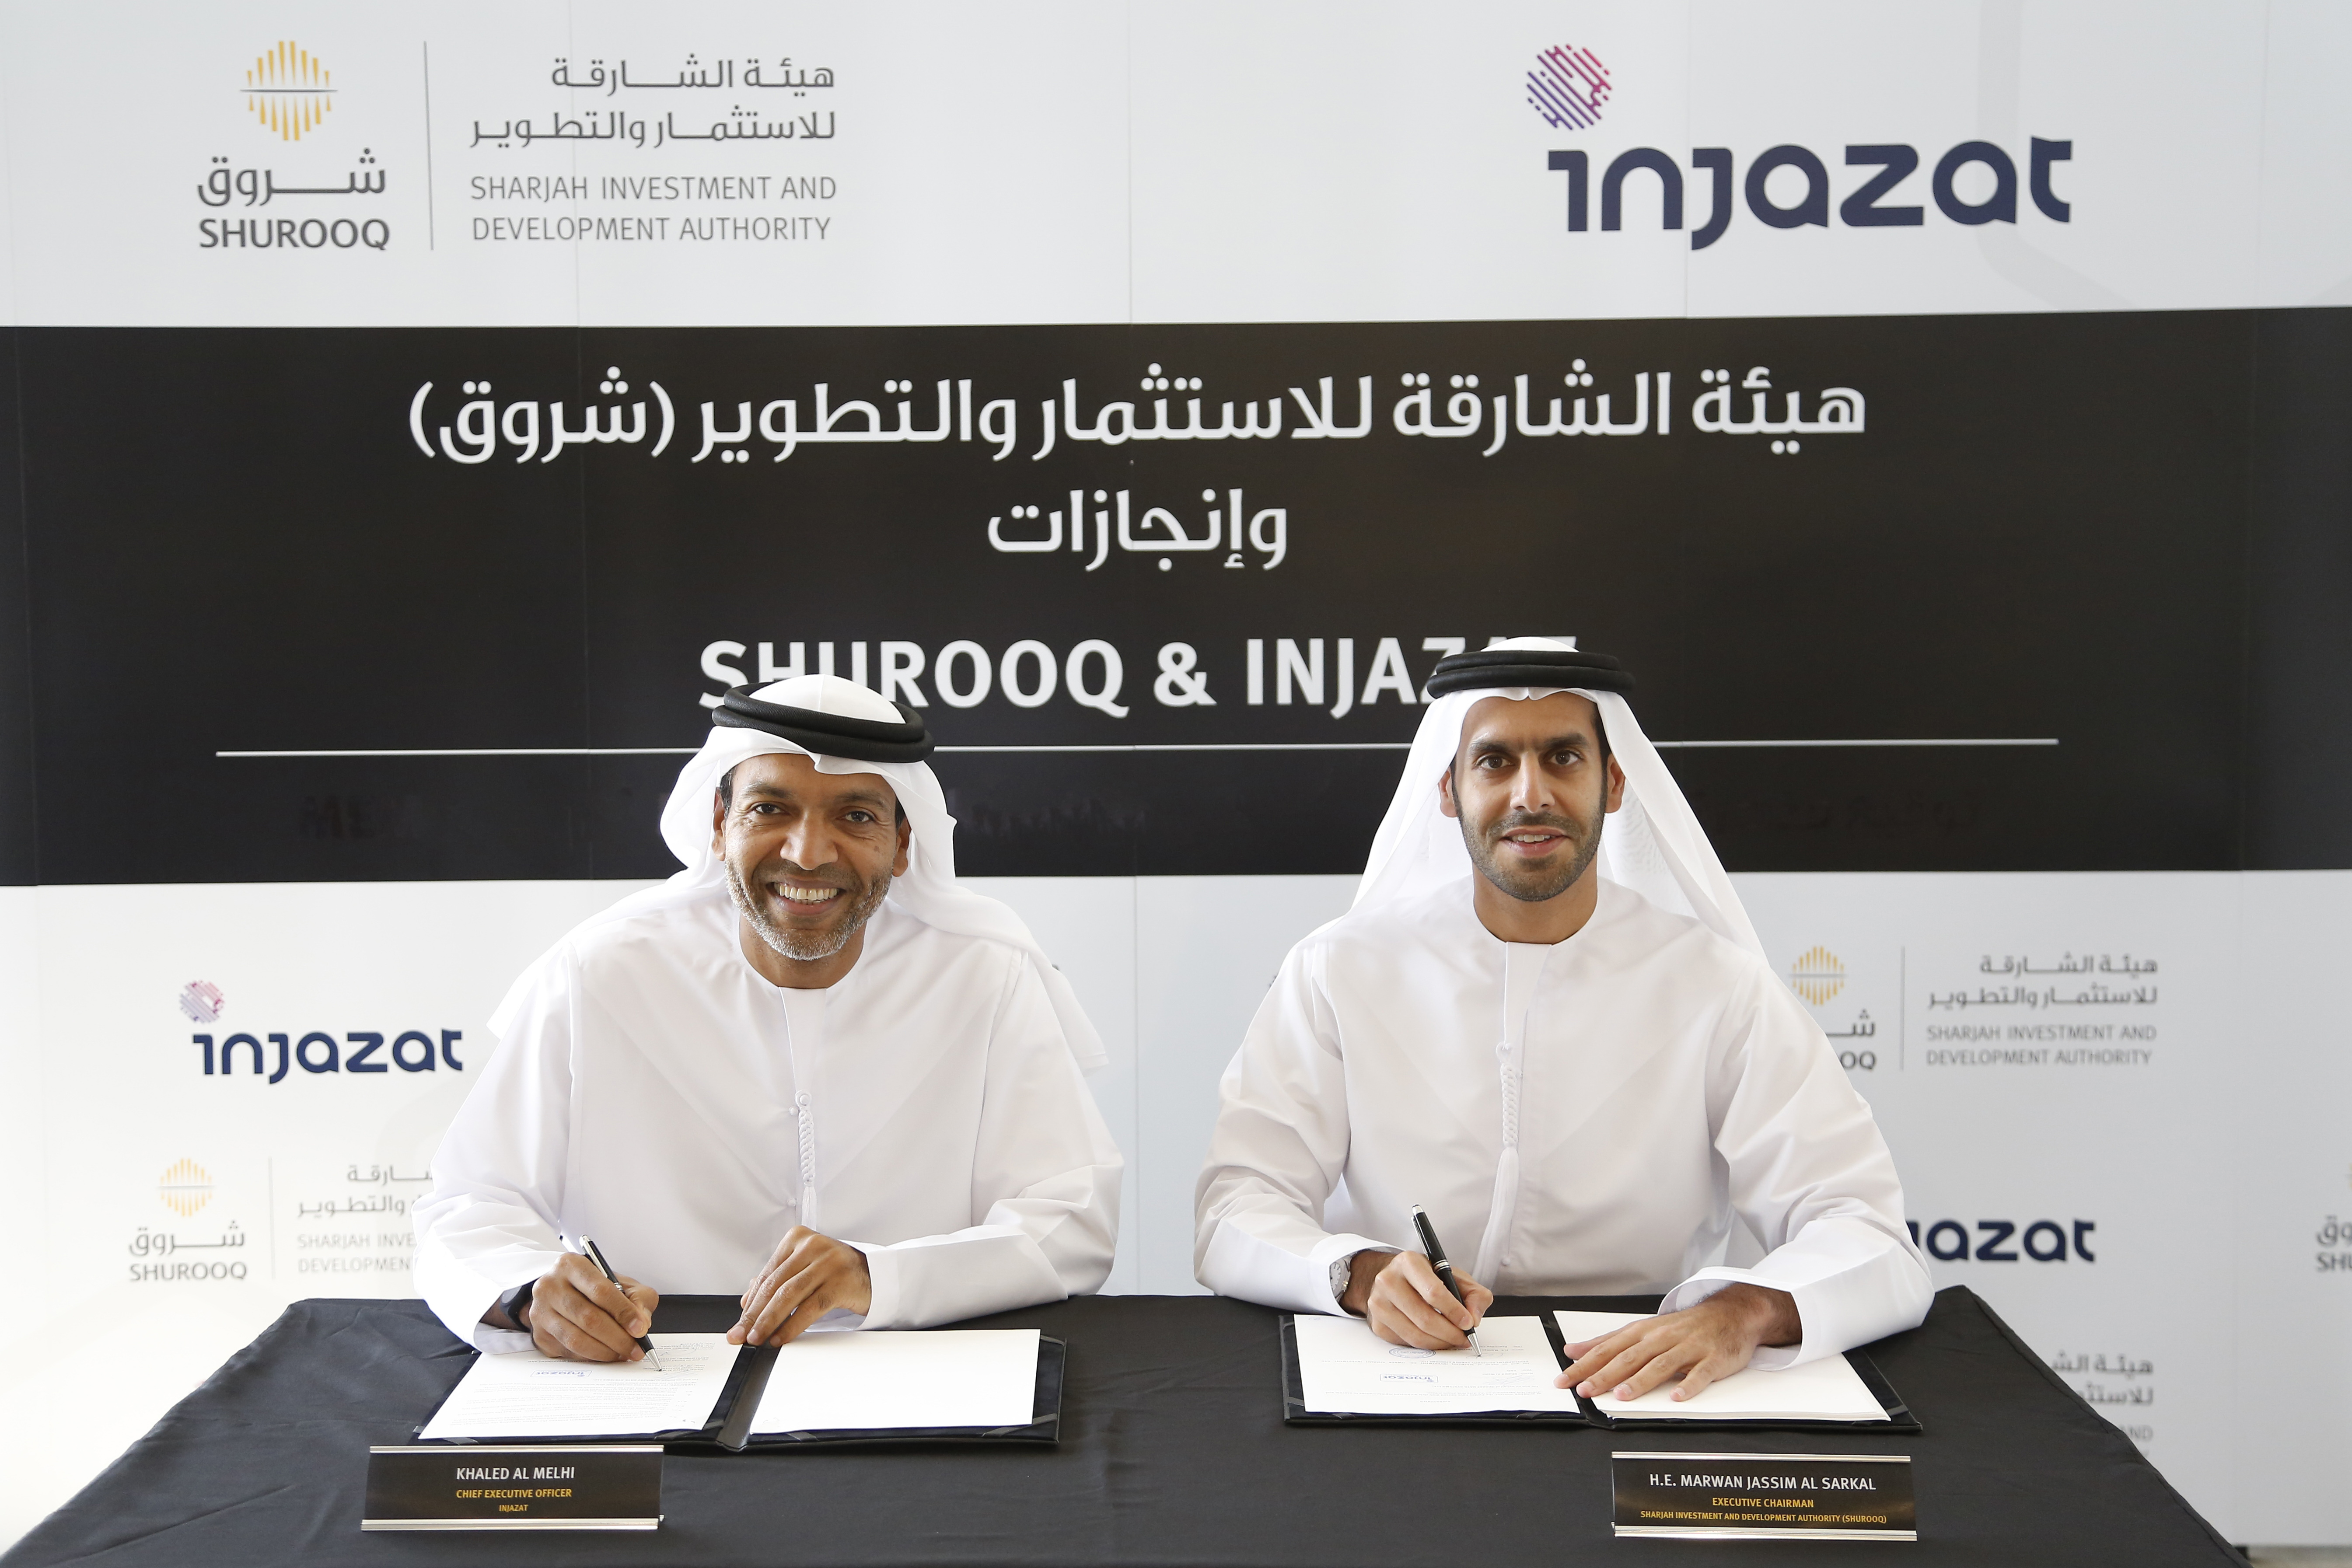 Mubadala-owned systems integrator brings expertise to